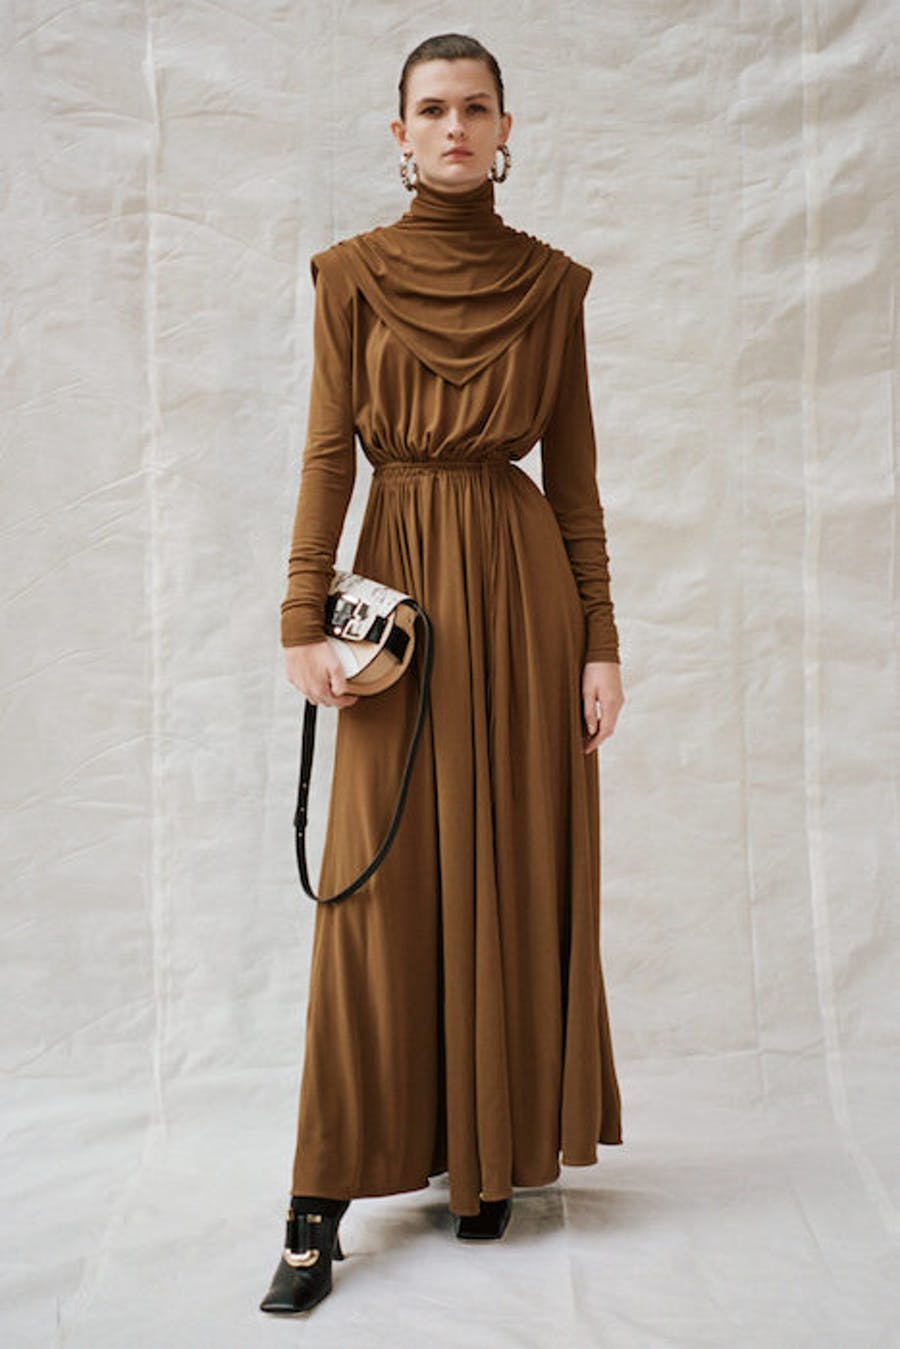 Proenza Schouler Cowl Neck Long Sleeve Dress in Brown Pre Fall 20